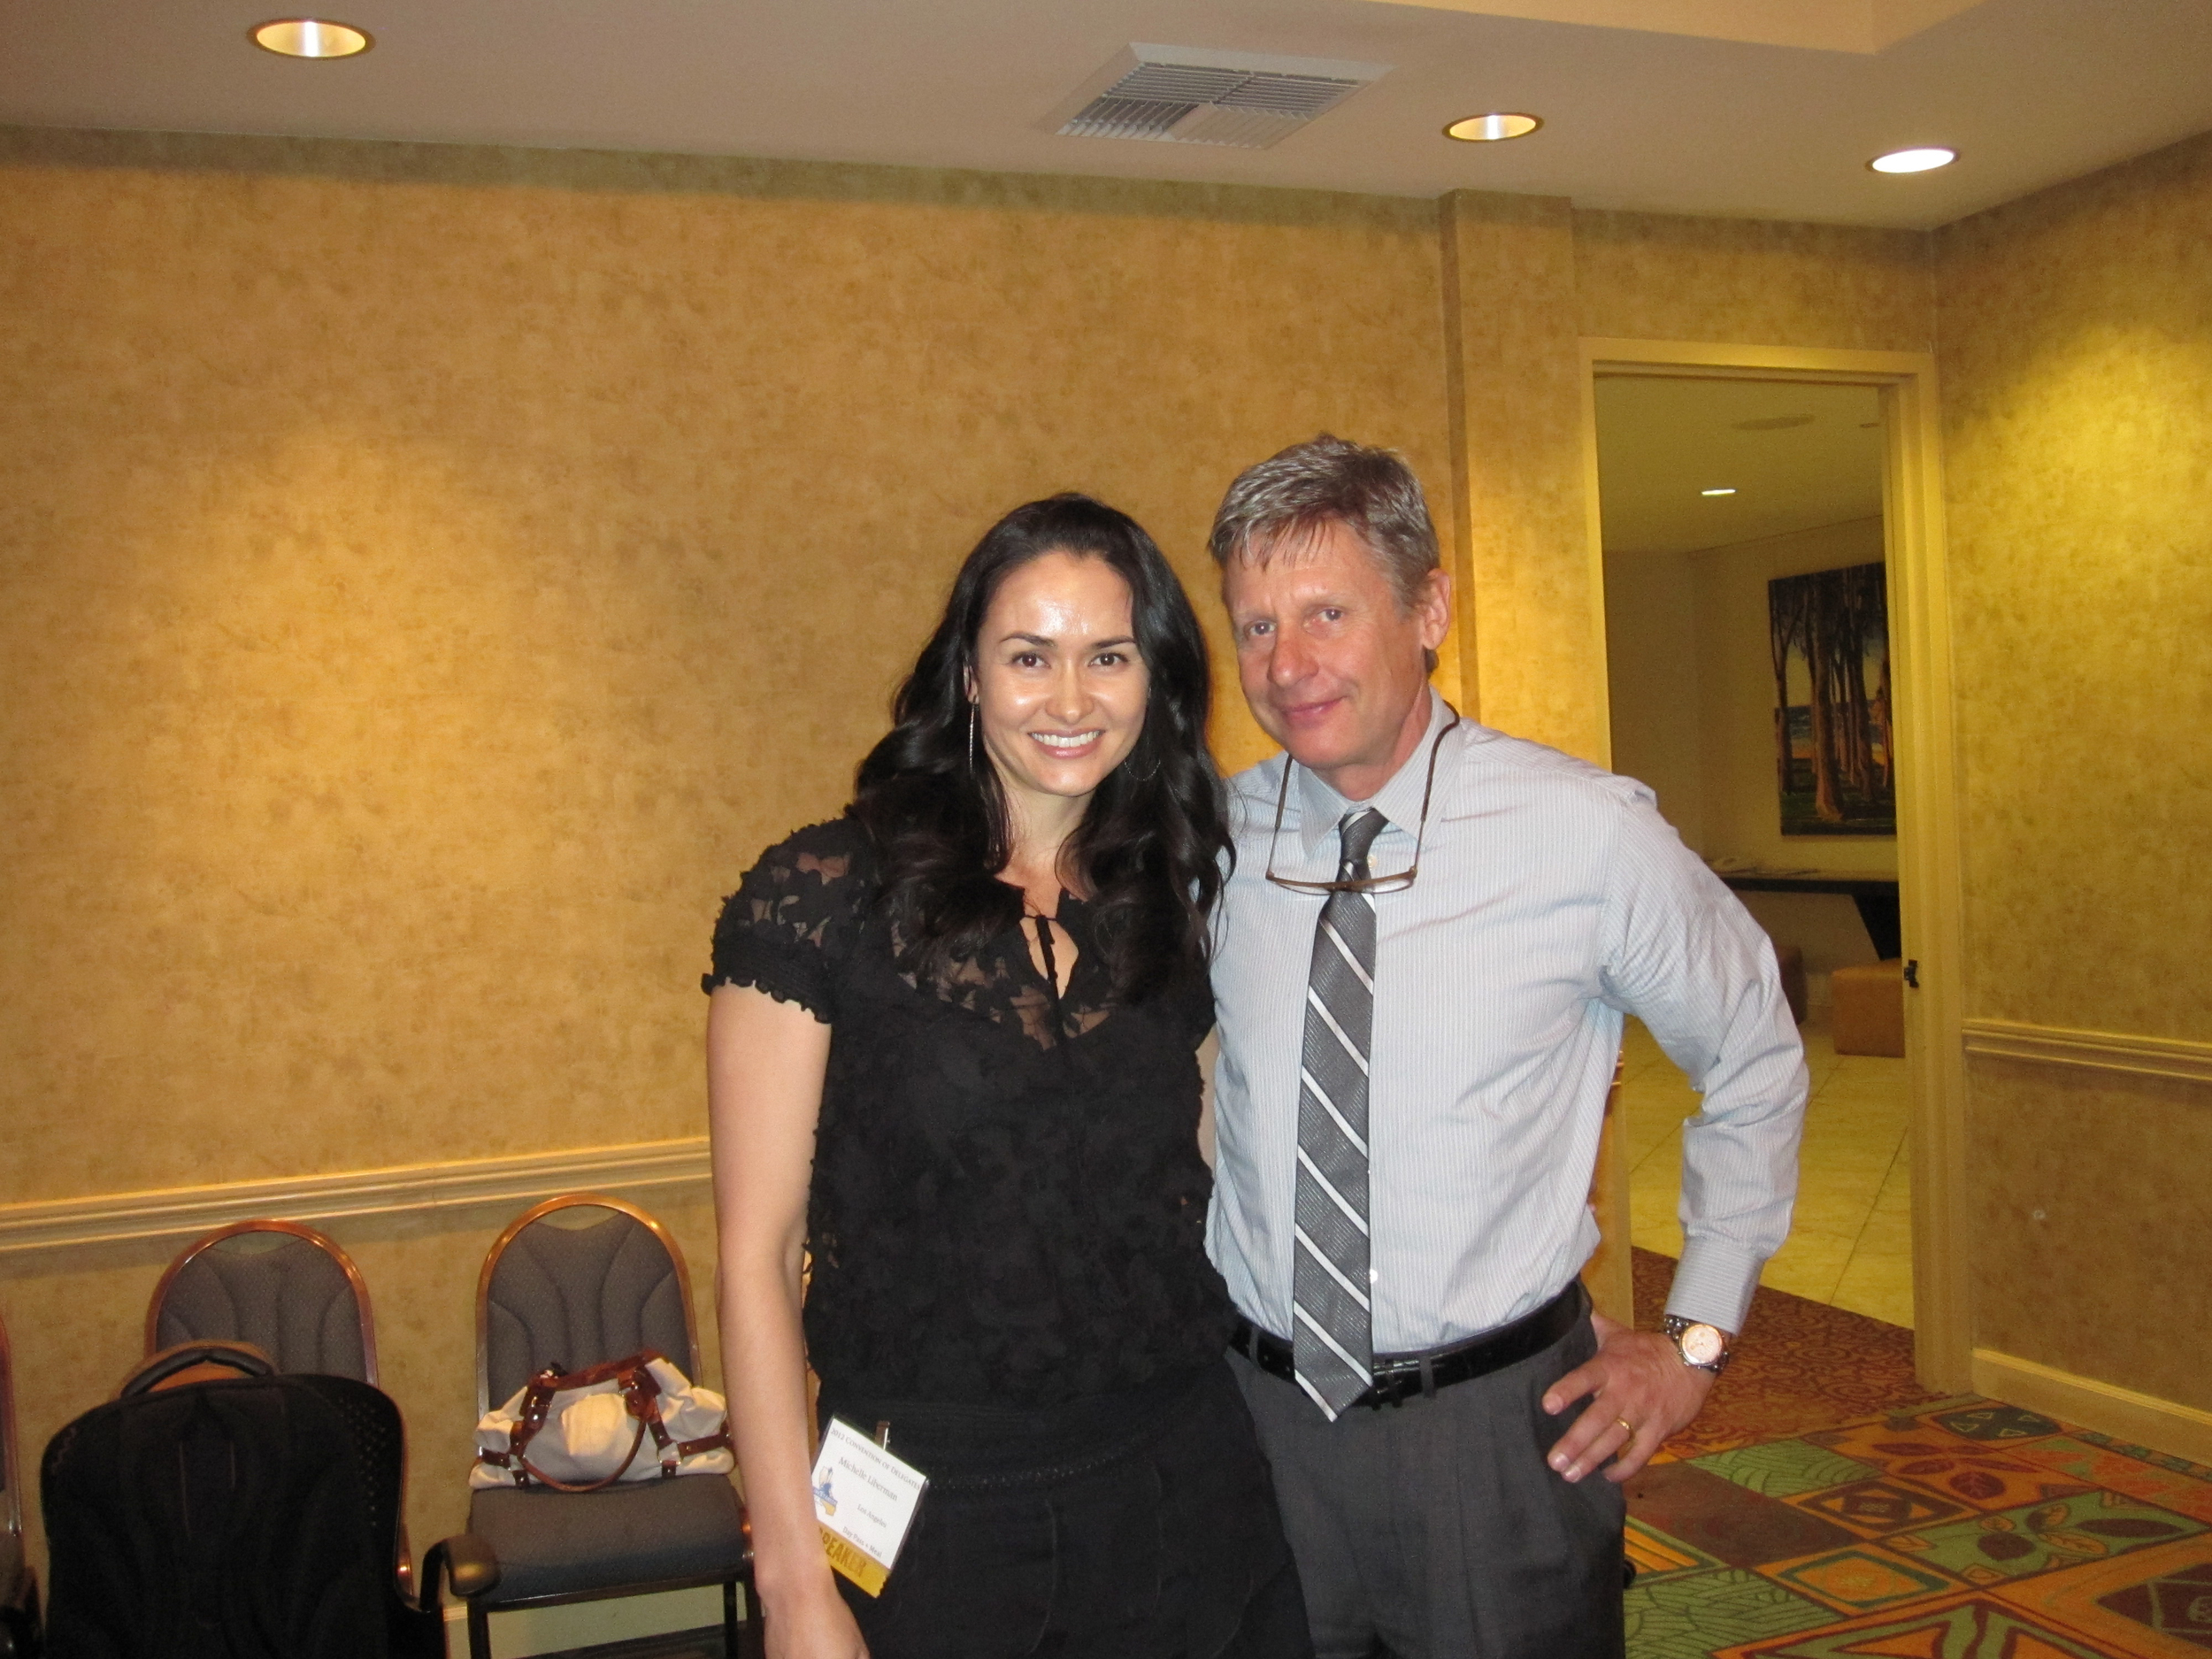 The Freedom Friend's Michelle Liberman and Gary Johnson (2012 Presidential candidate)